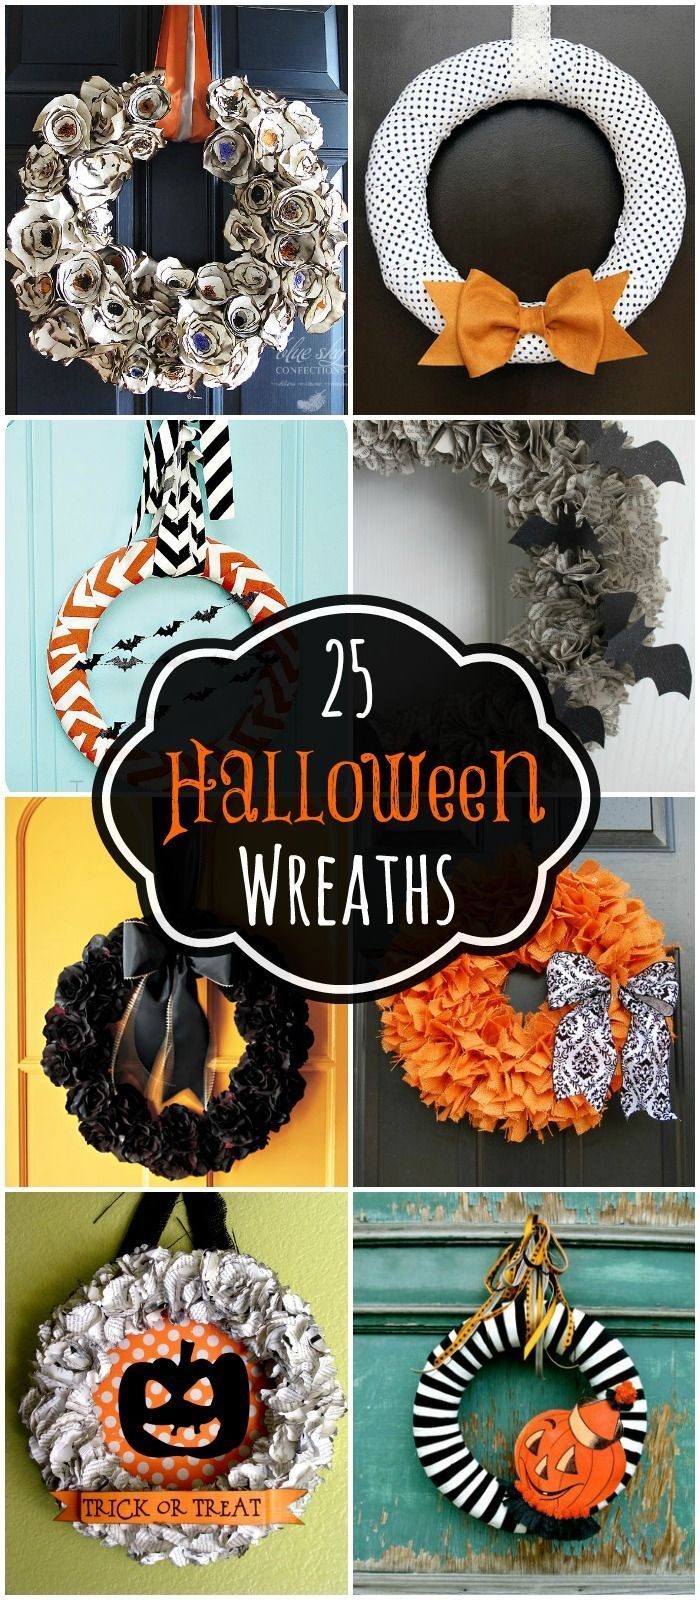 A collection of 25 Halloween wreaths to inspire you for your Halloween decor! { http://lilluna.com }